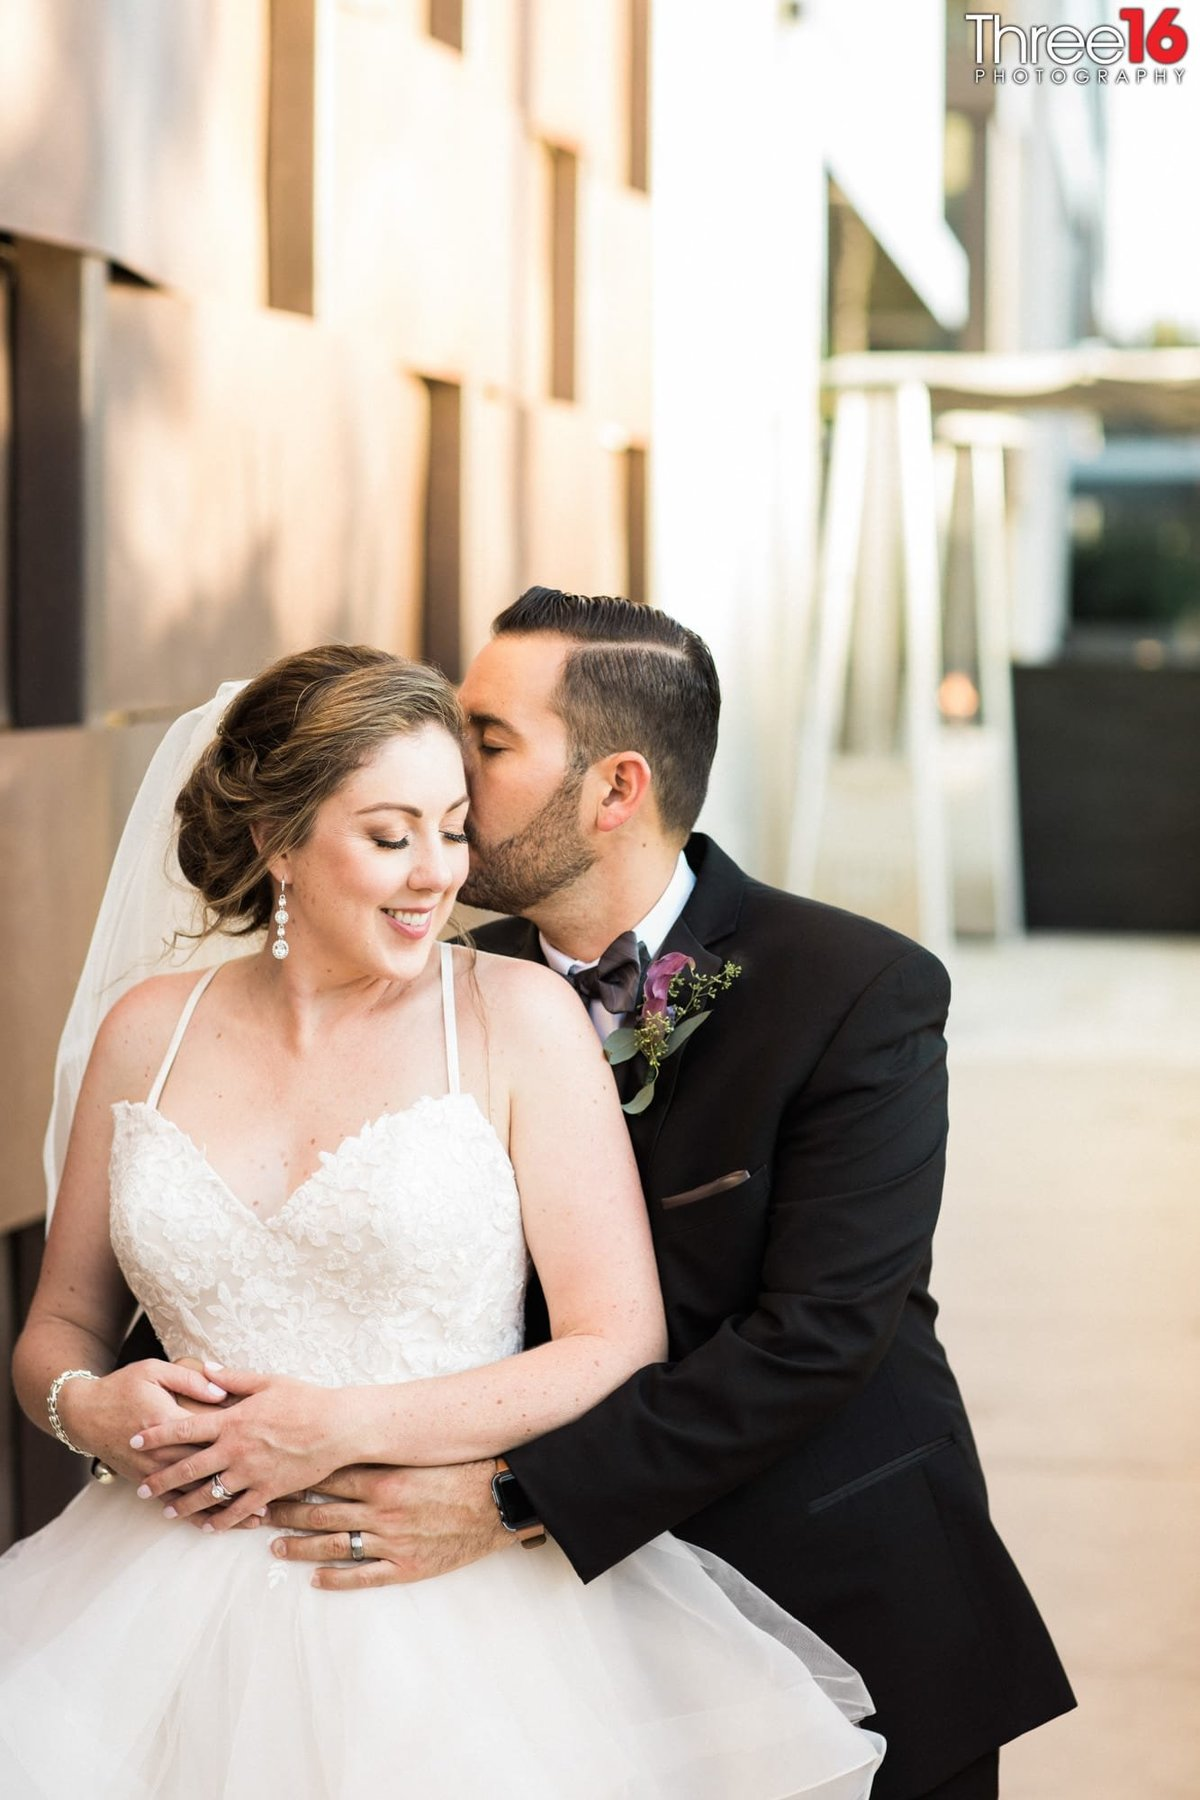 Wedding at Avenue of the arts costa mesa